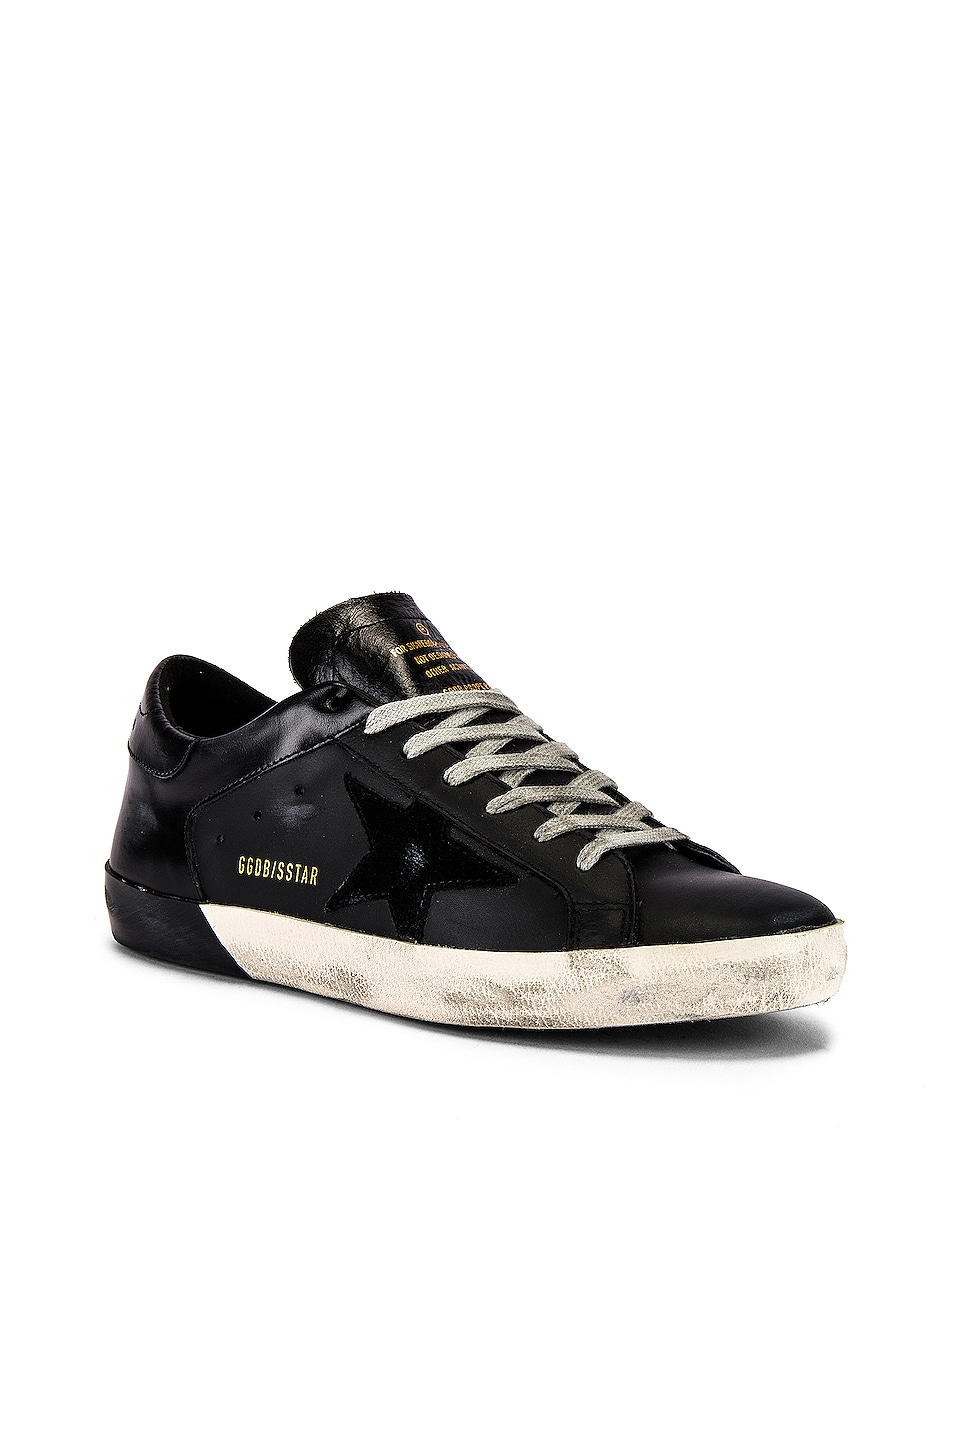 Image 1 of Golden Goose Superstar Sneaker in Black Leather & Black Foxing